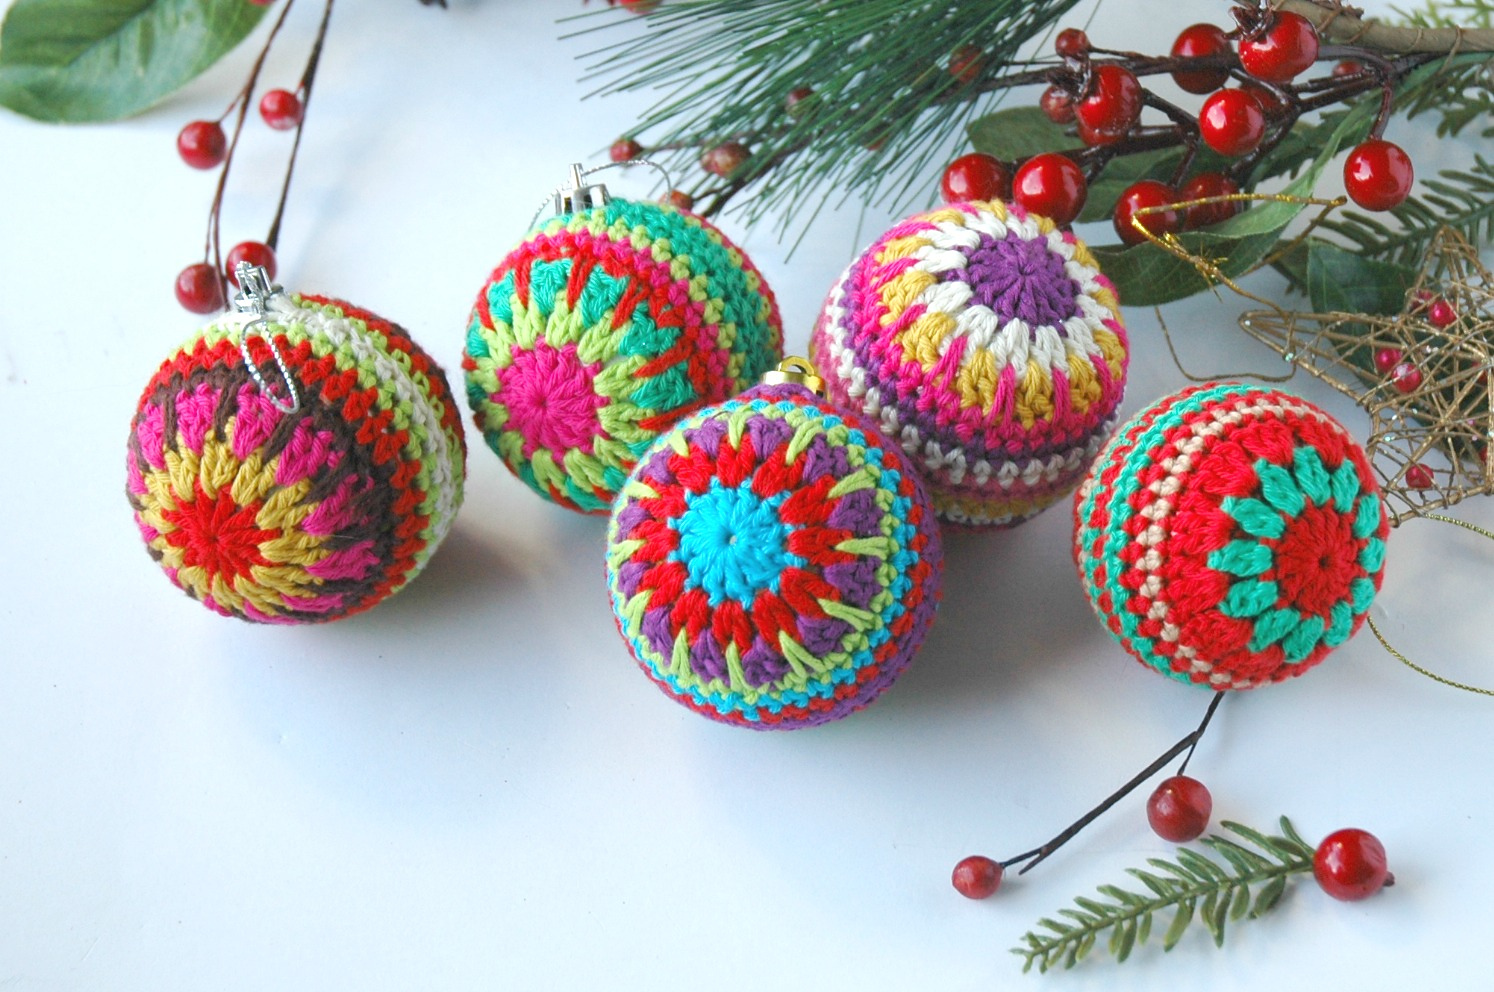 Crochet a Christmas Bauble ... Last-Minute Gift, Super Stashbuster!